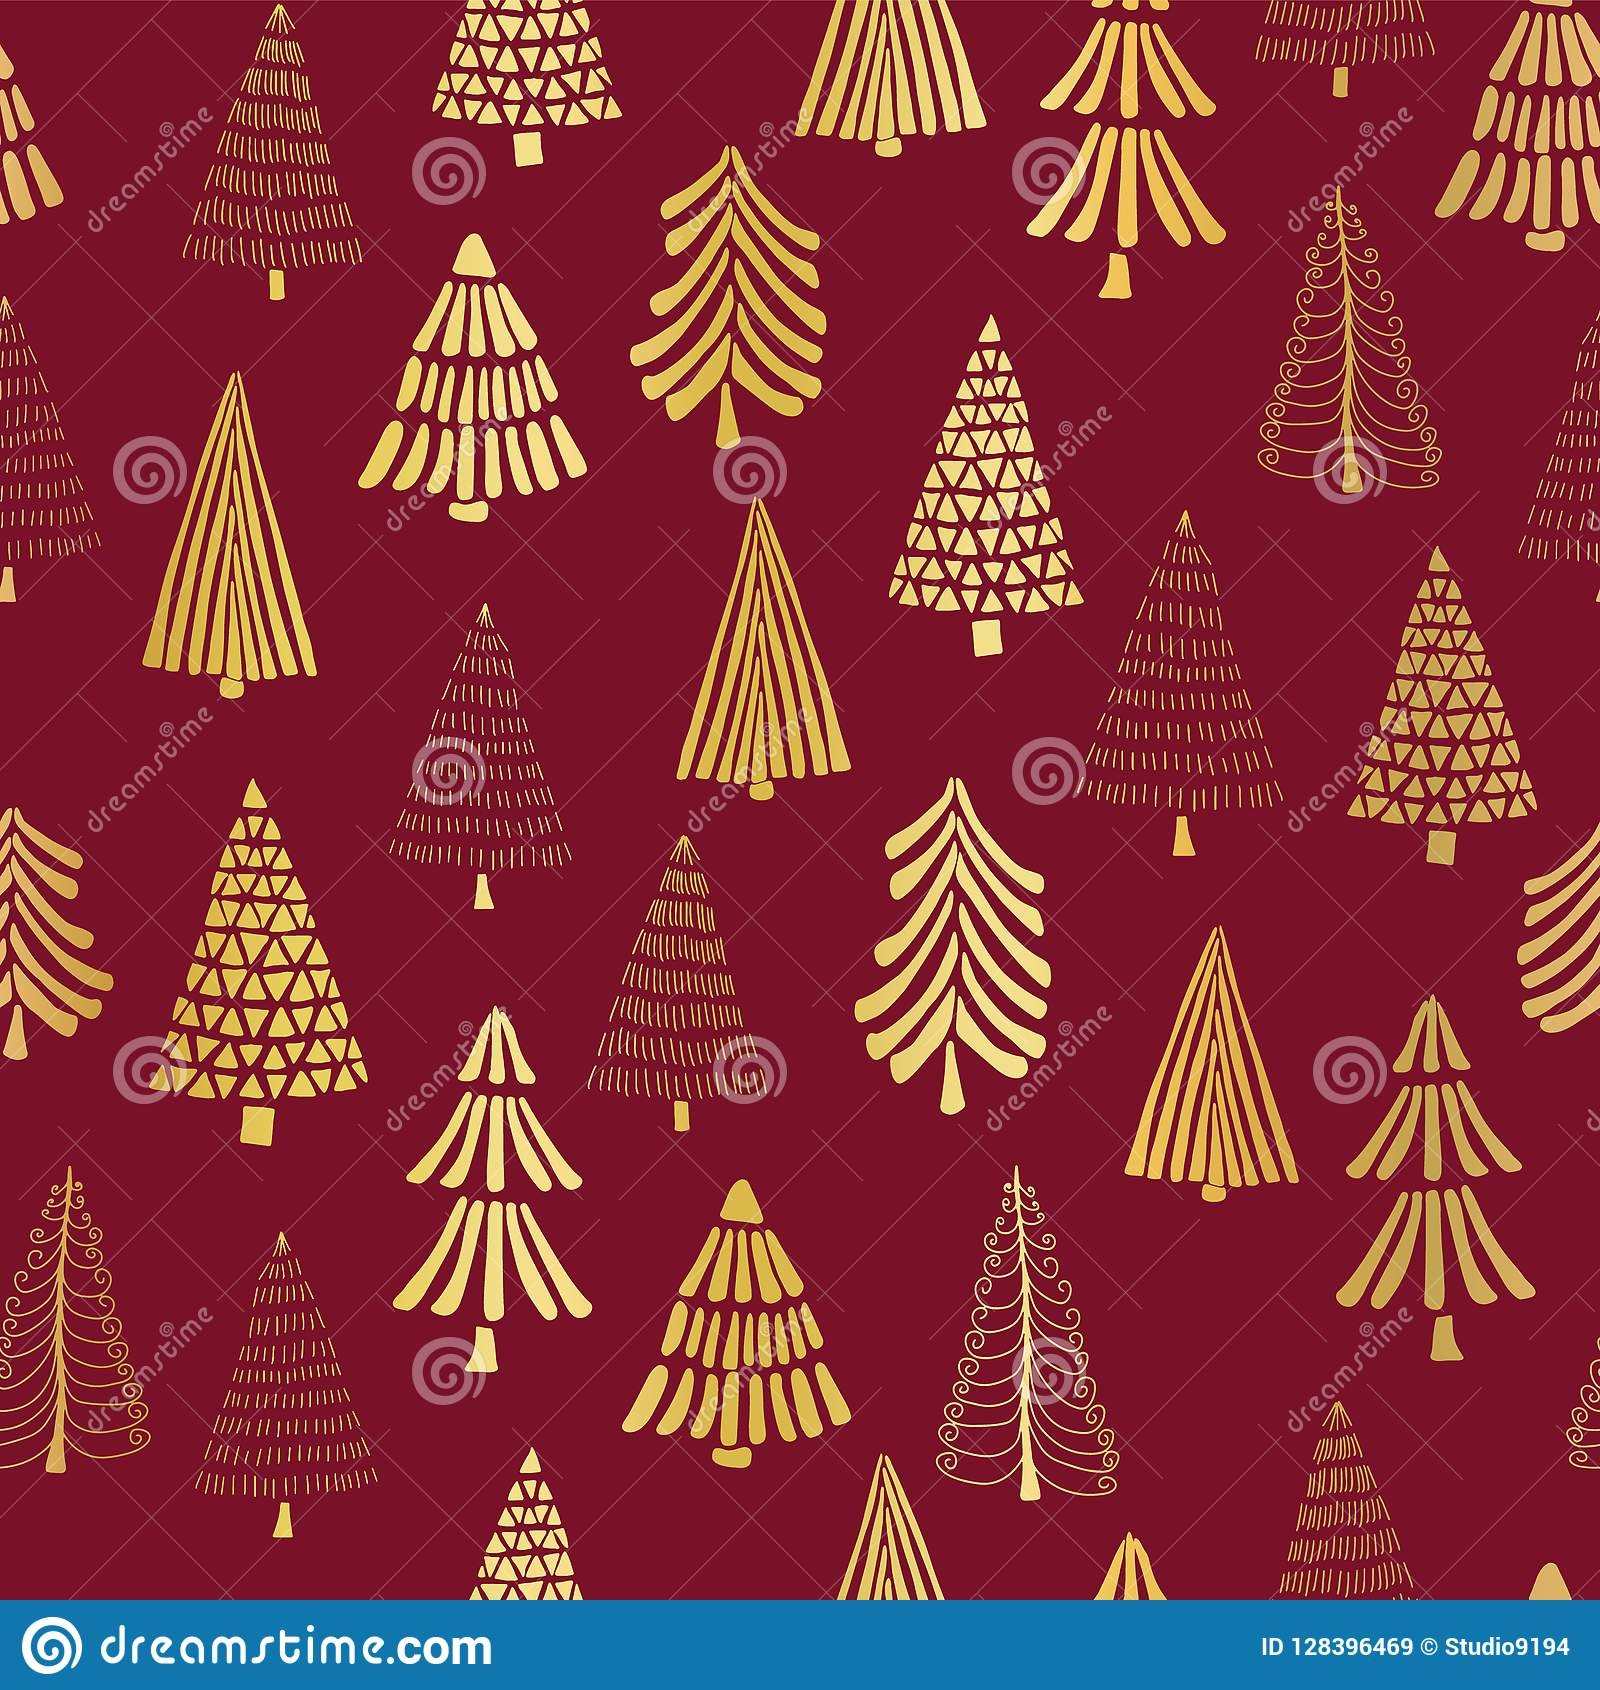 Hand drawn Christmas trees gold foil on red seamless vector pattern background. Metallic shiny golden trees. Elegant design for